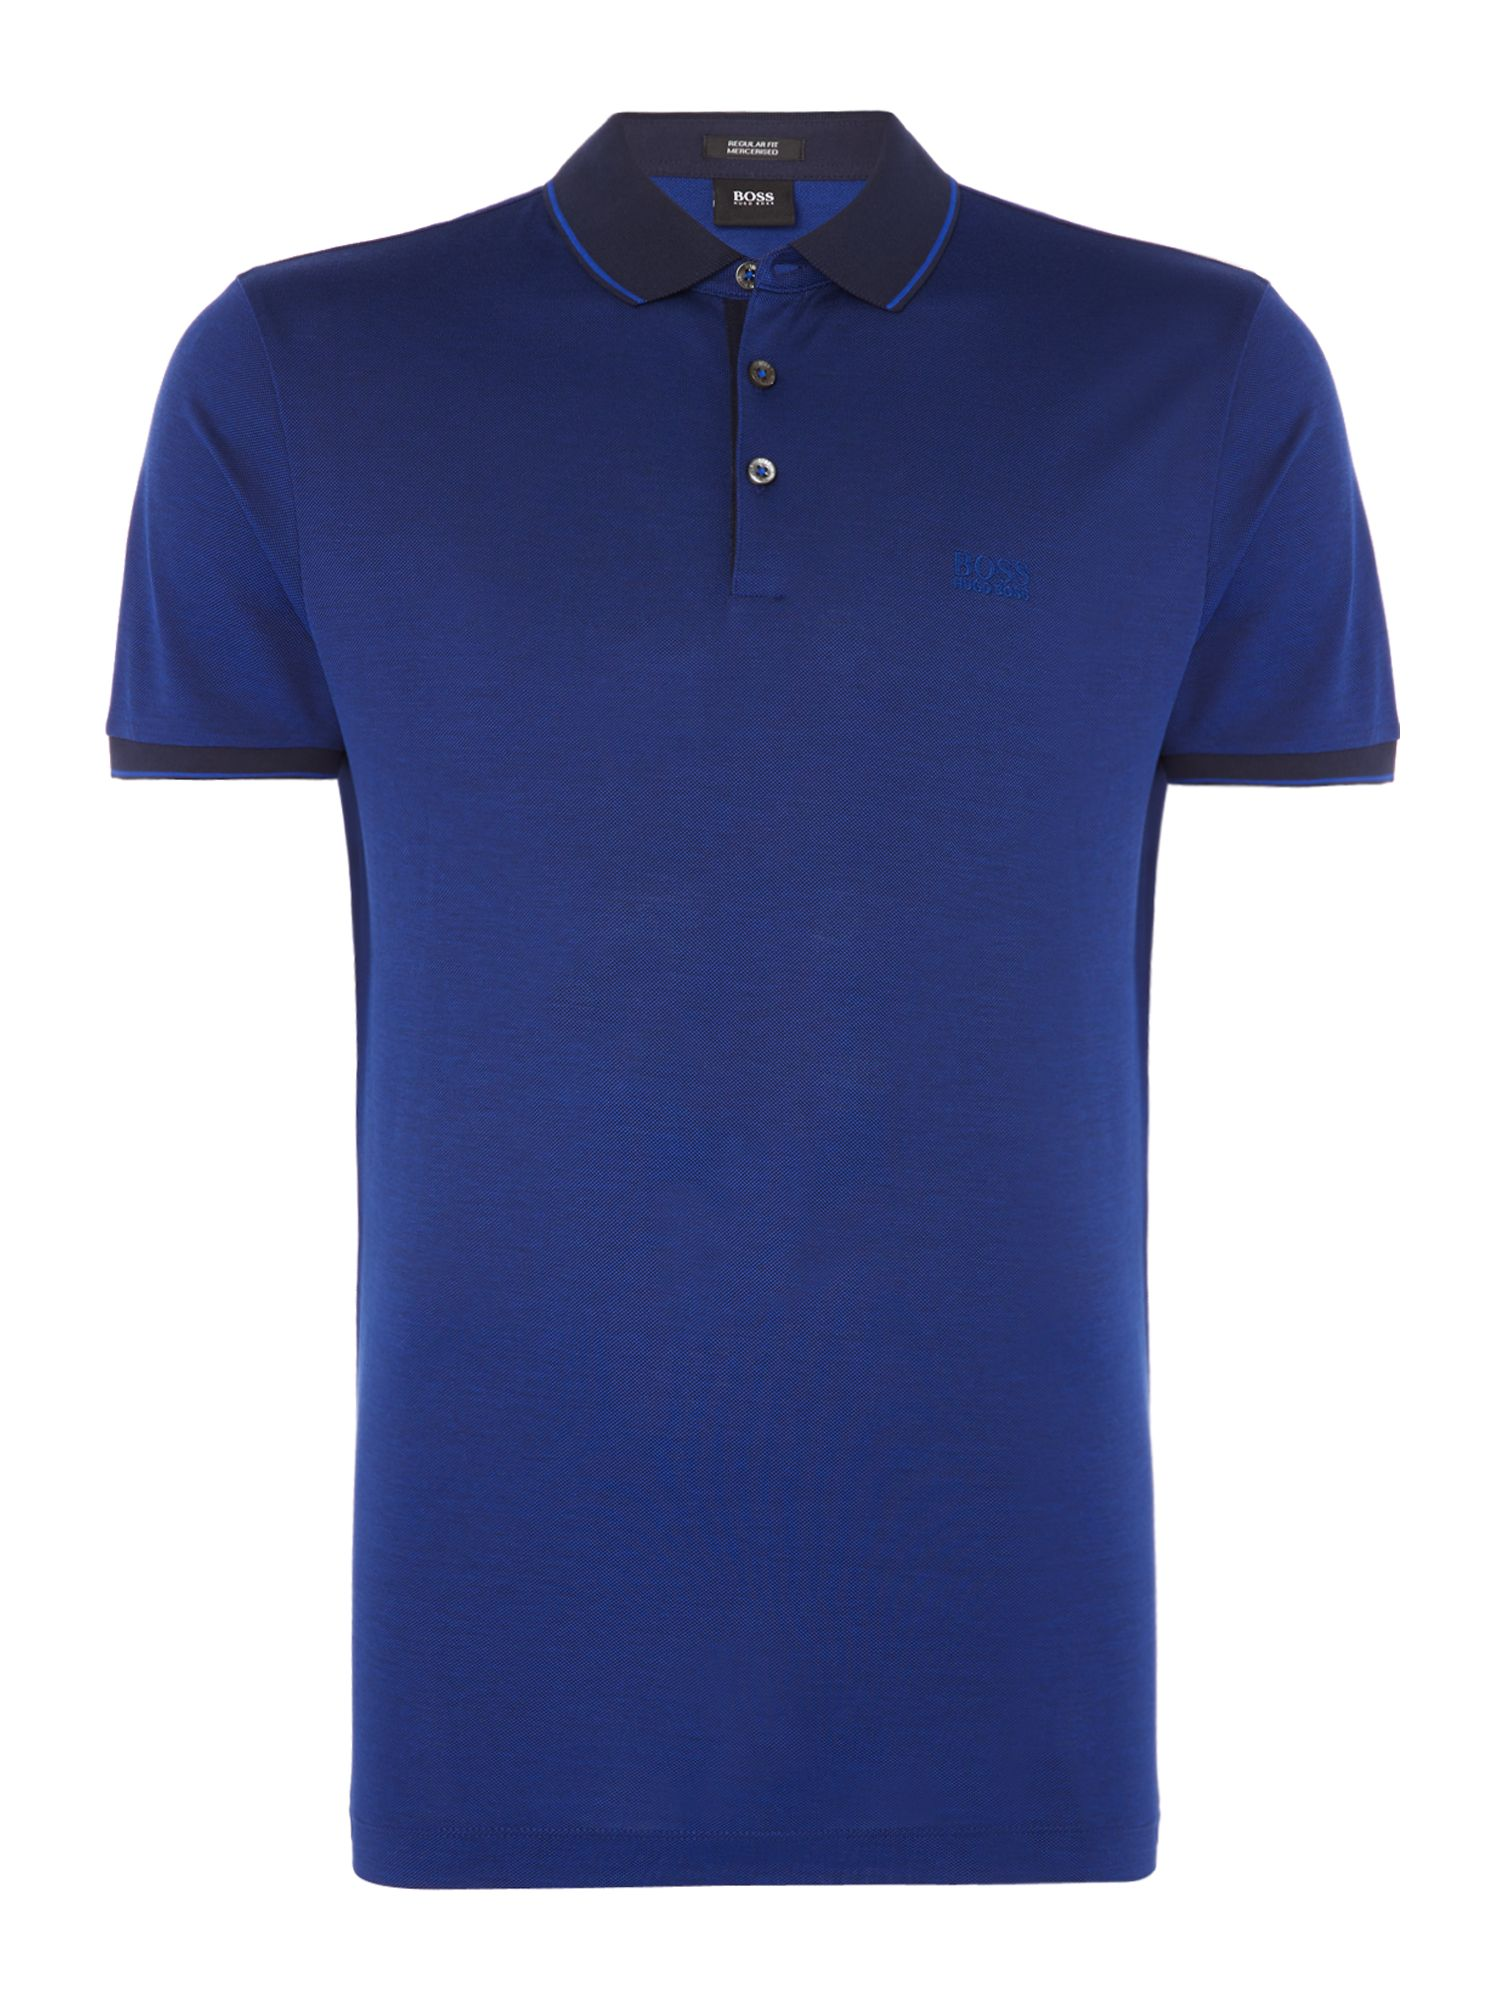 Men's Hugo Boss Prout 10 mercerised logo polo shirt, Blue